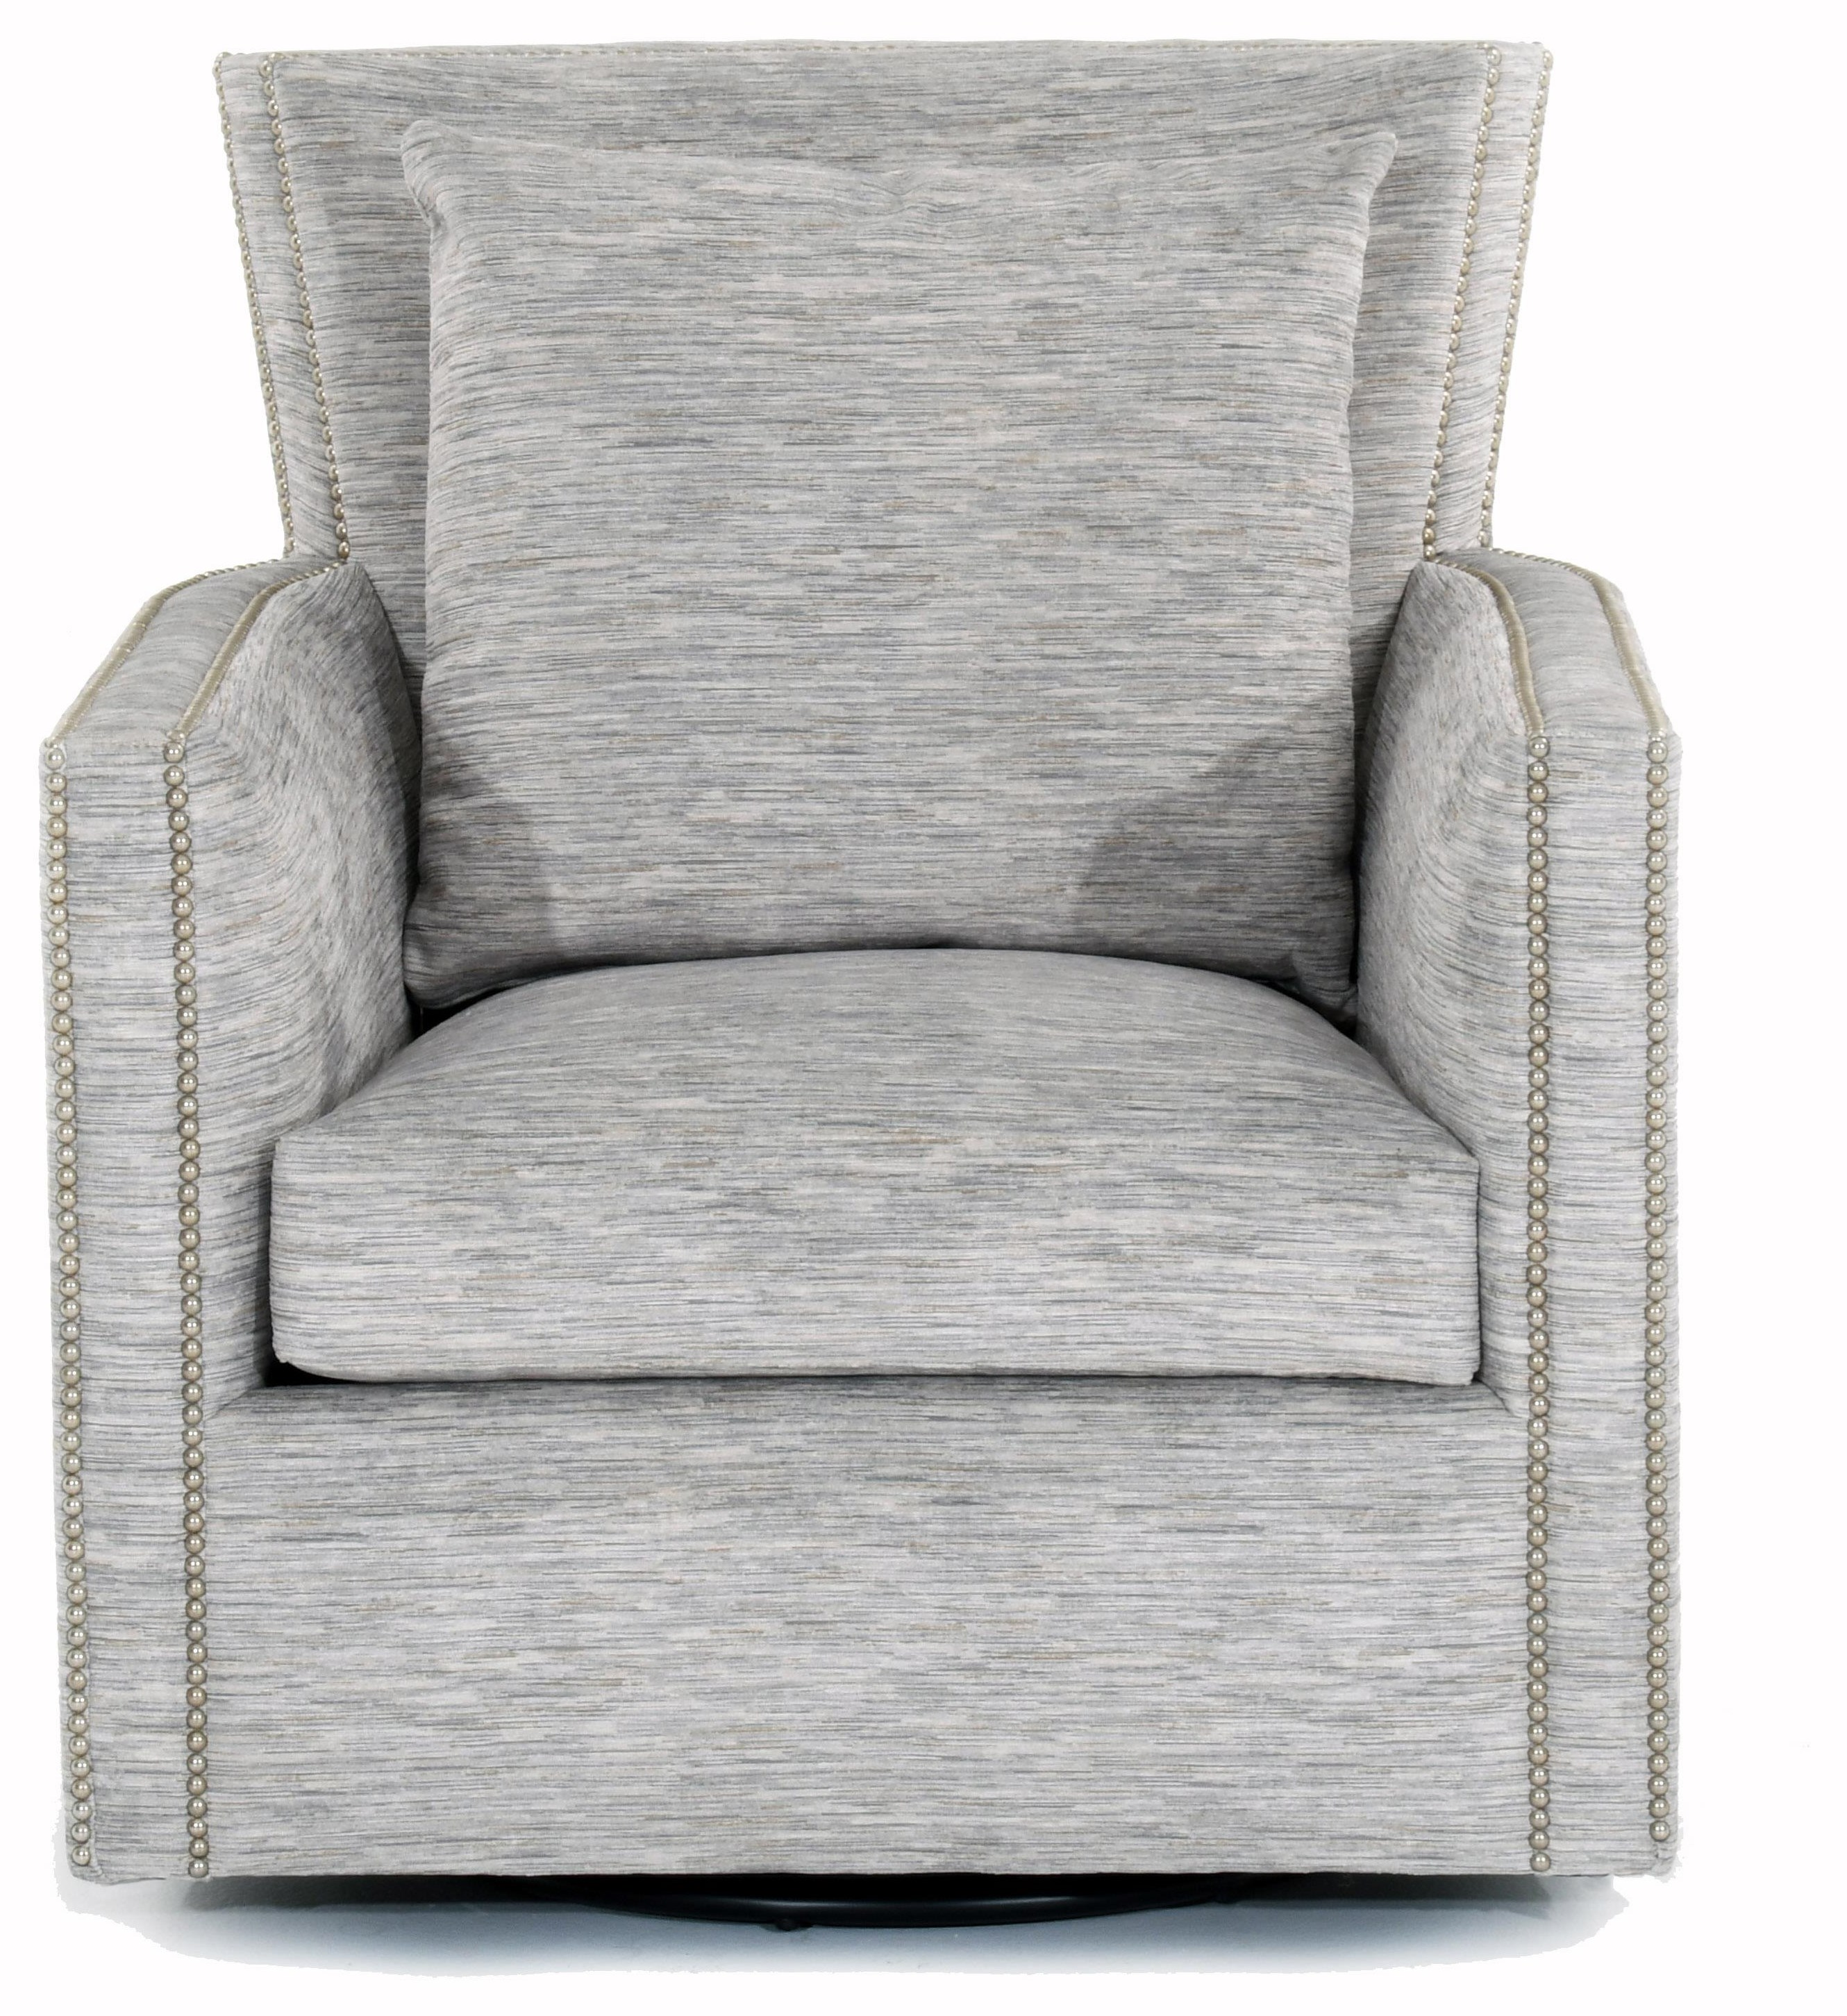 7721 Swivel Chair by Huntington House at Baer's Furniture